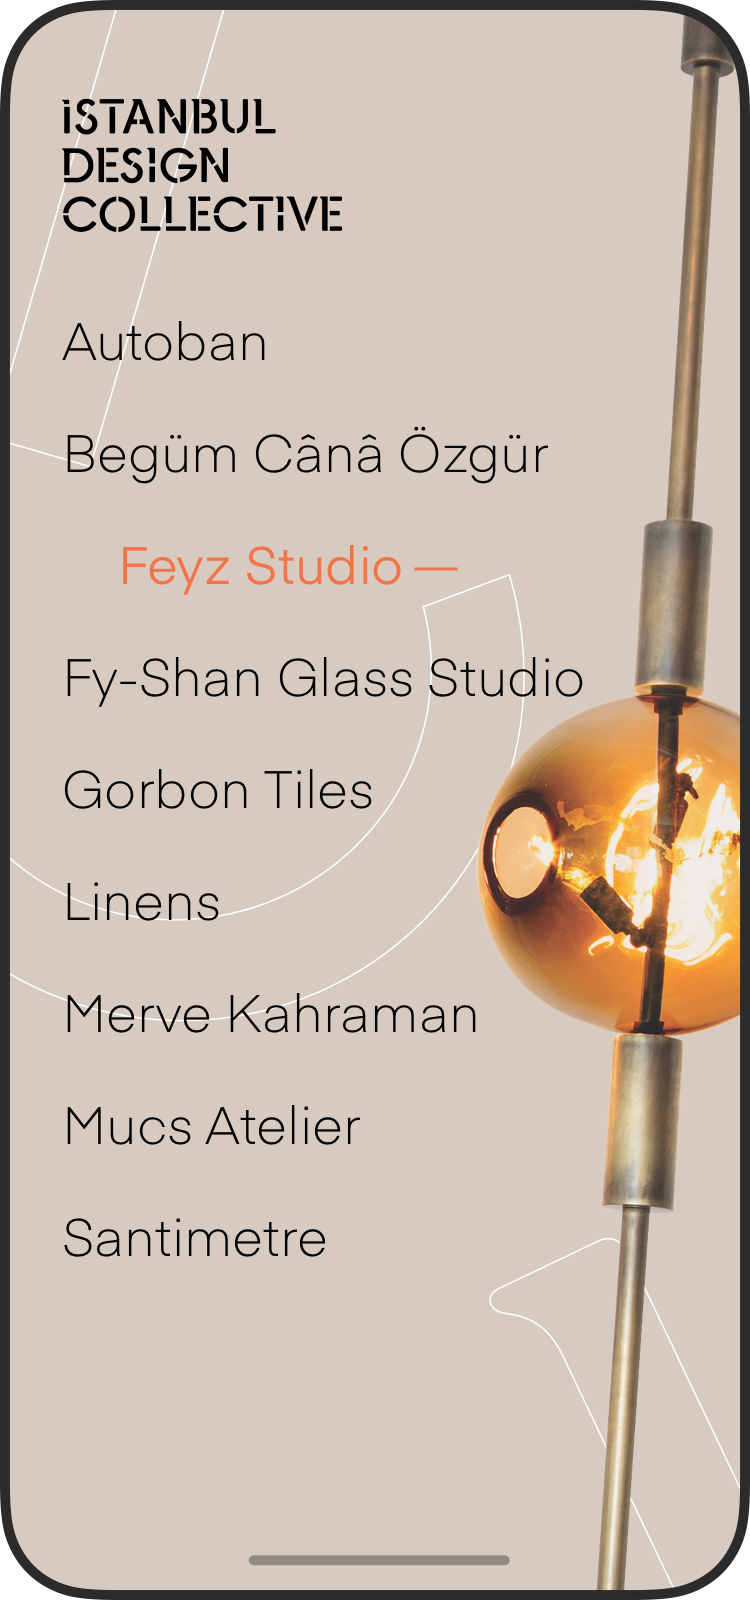 istanbuldesigncollective-mobile2